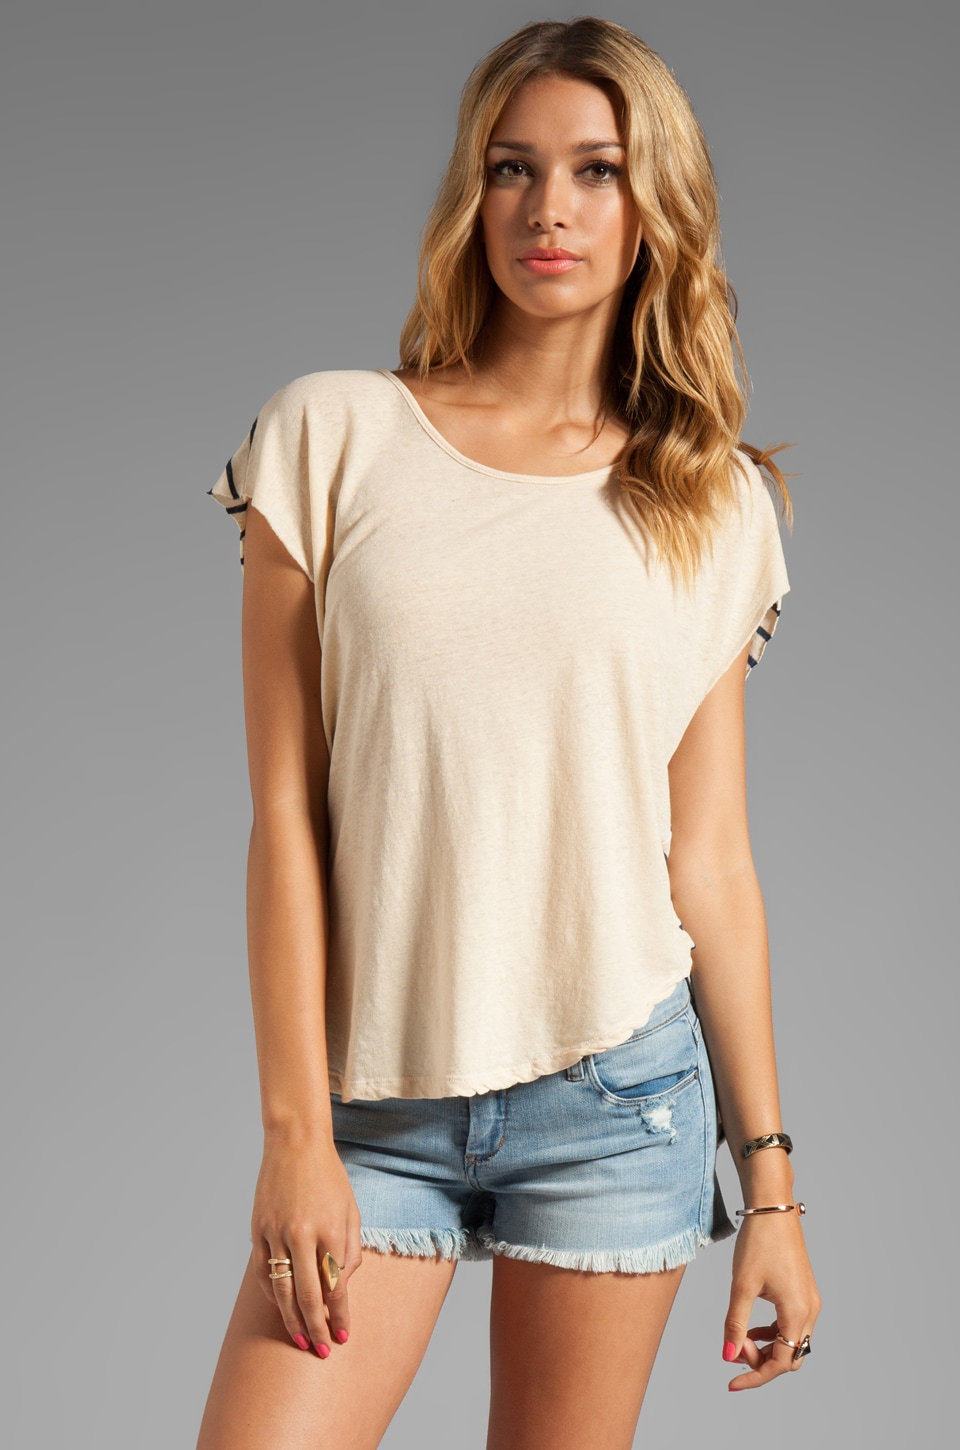 My Line Piper Short Sleeve Pullover in Nude